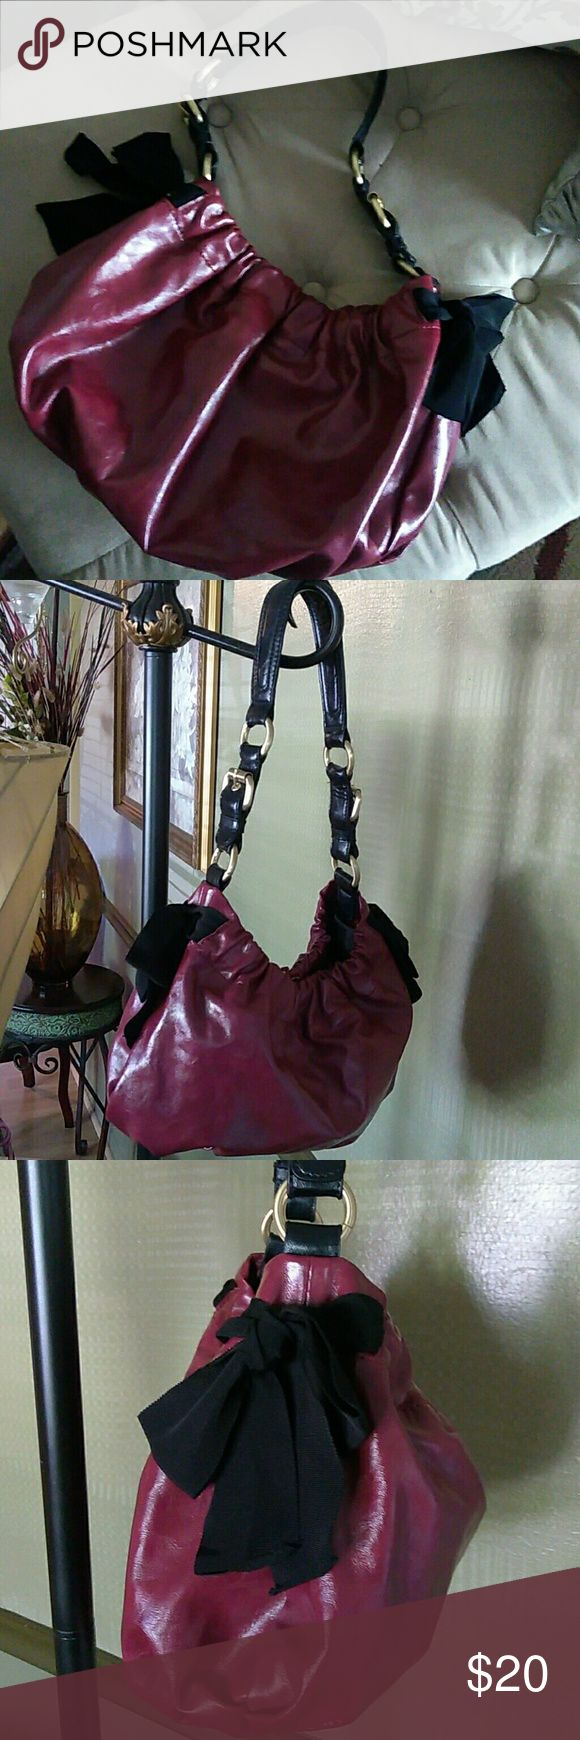 """Simply Vera Wang Hobo Cute and feminine bag with chiffon-type side bows and gathered opening. Leather strap; PU bag. Snap magnetic closure. Measures 13"""" X 9.5. Gold hardware. Maroon/Burgundy color. Simply Vera Vera Wang Bags Hobos"""